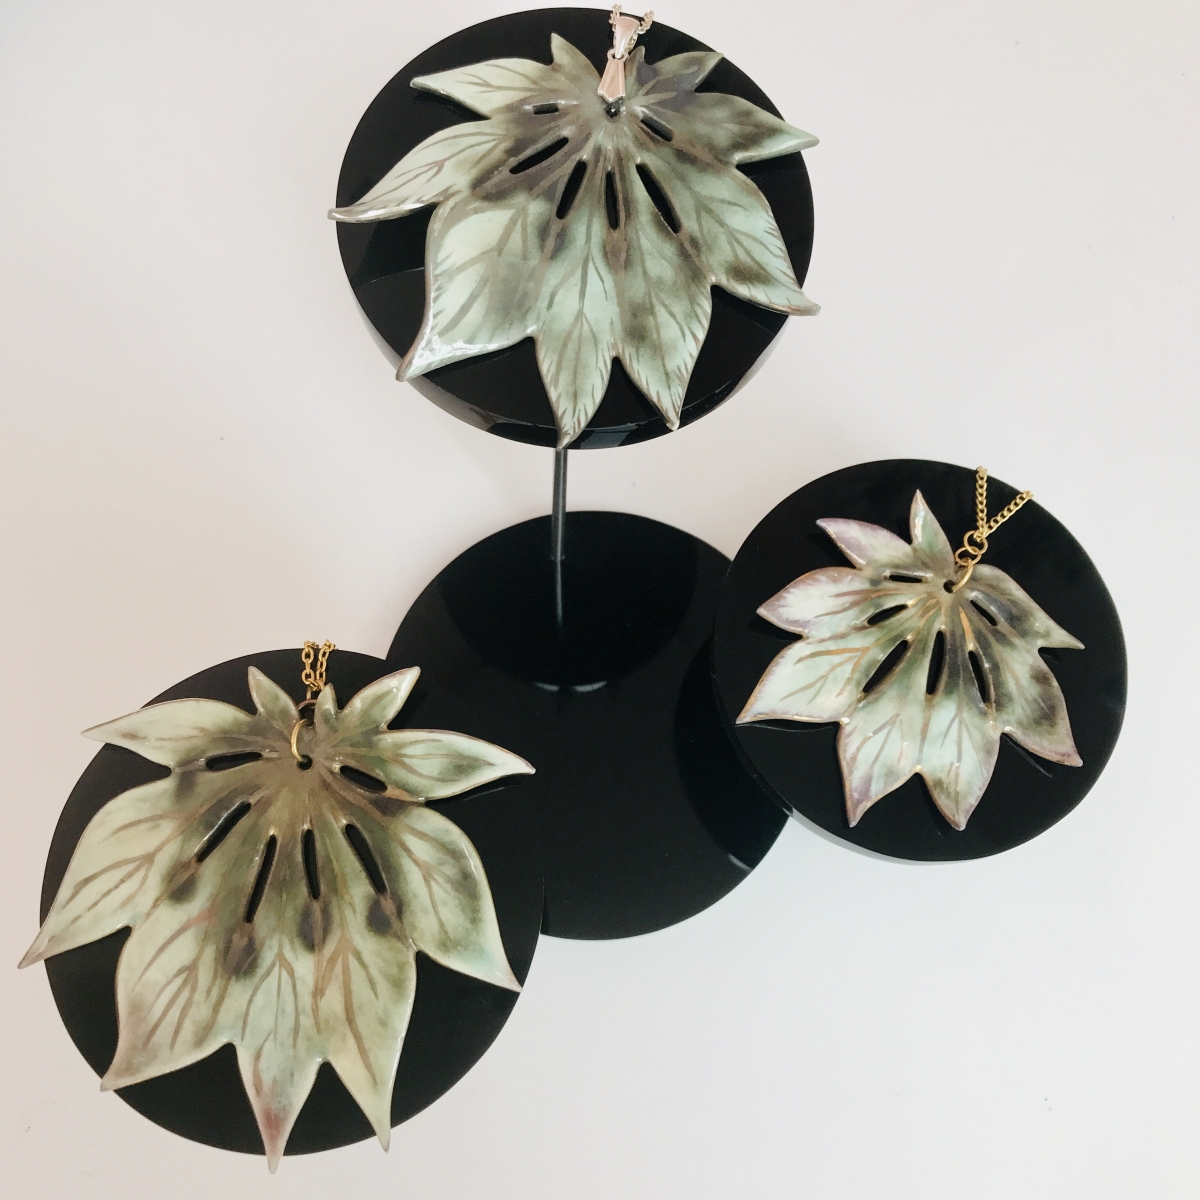 Maple Leaf Pendants by Sonya Ceramic Art 'Ceramics Inspired By Nature' made using the impression from real acer japonica leaves